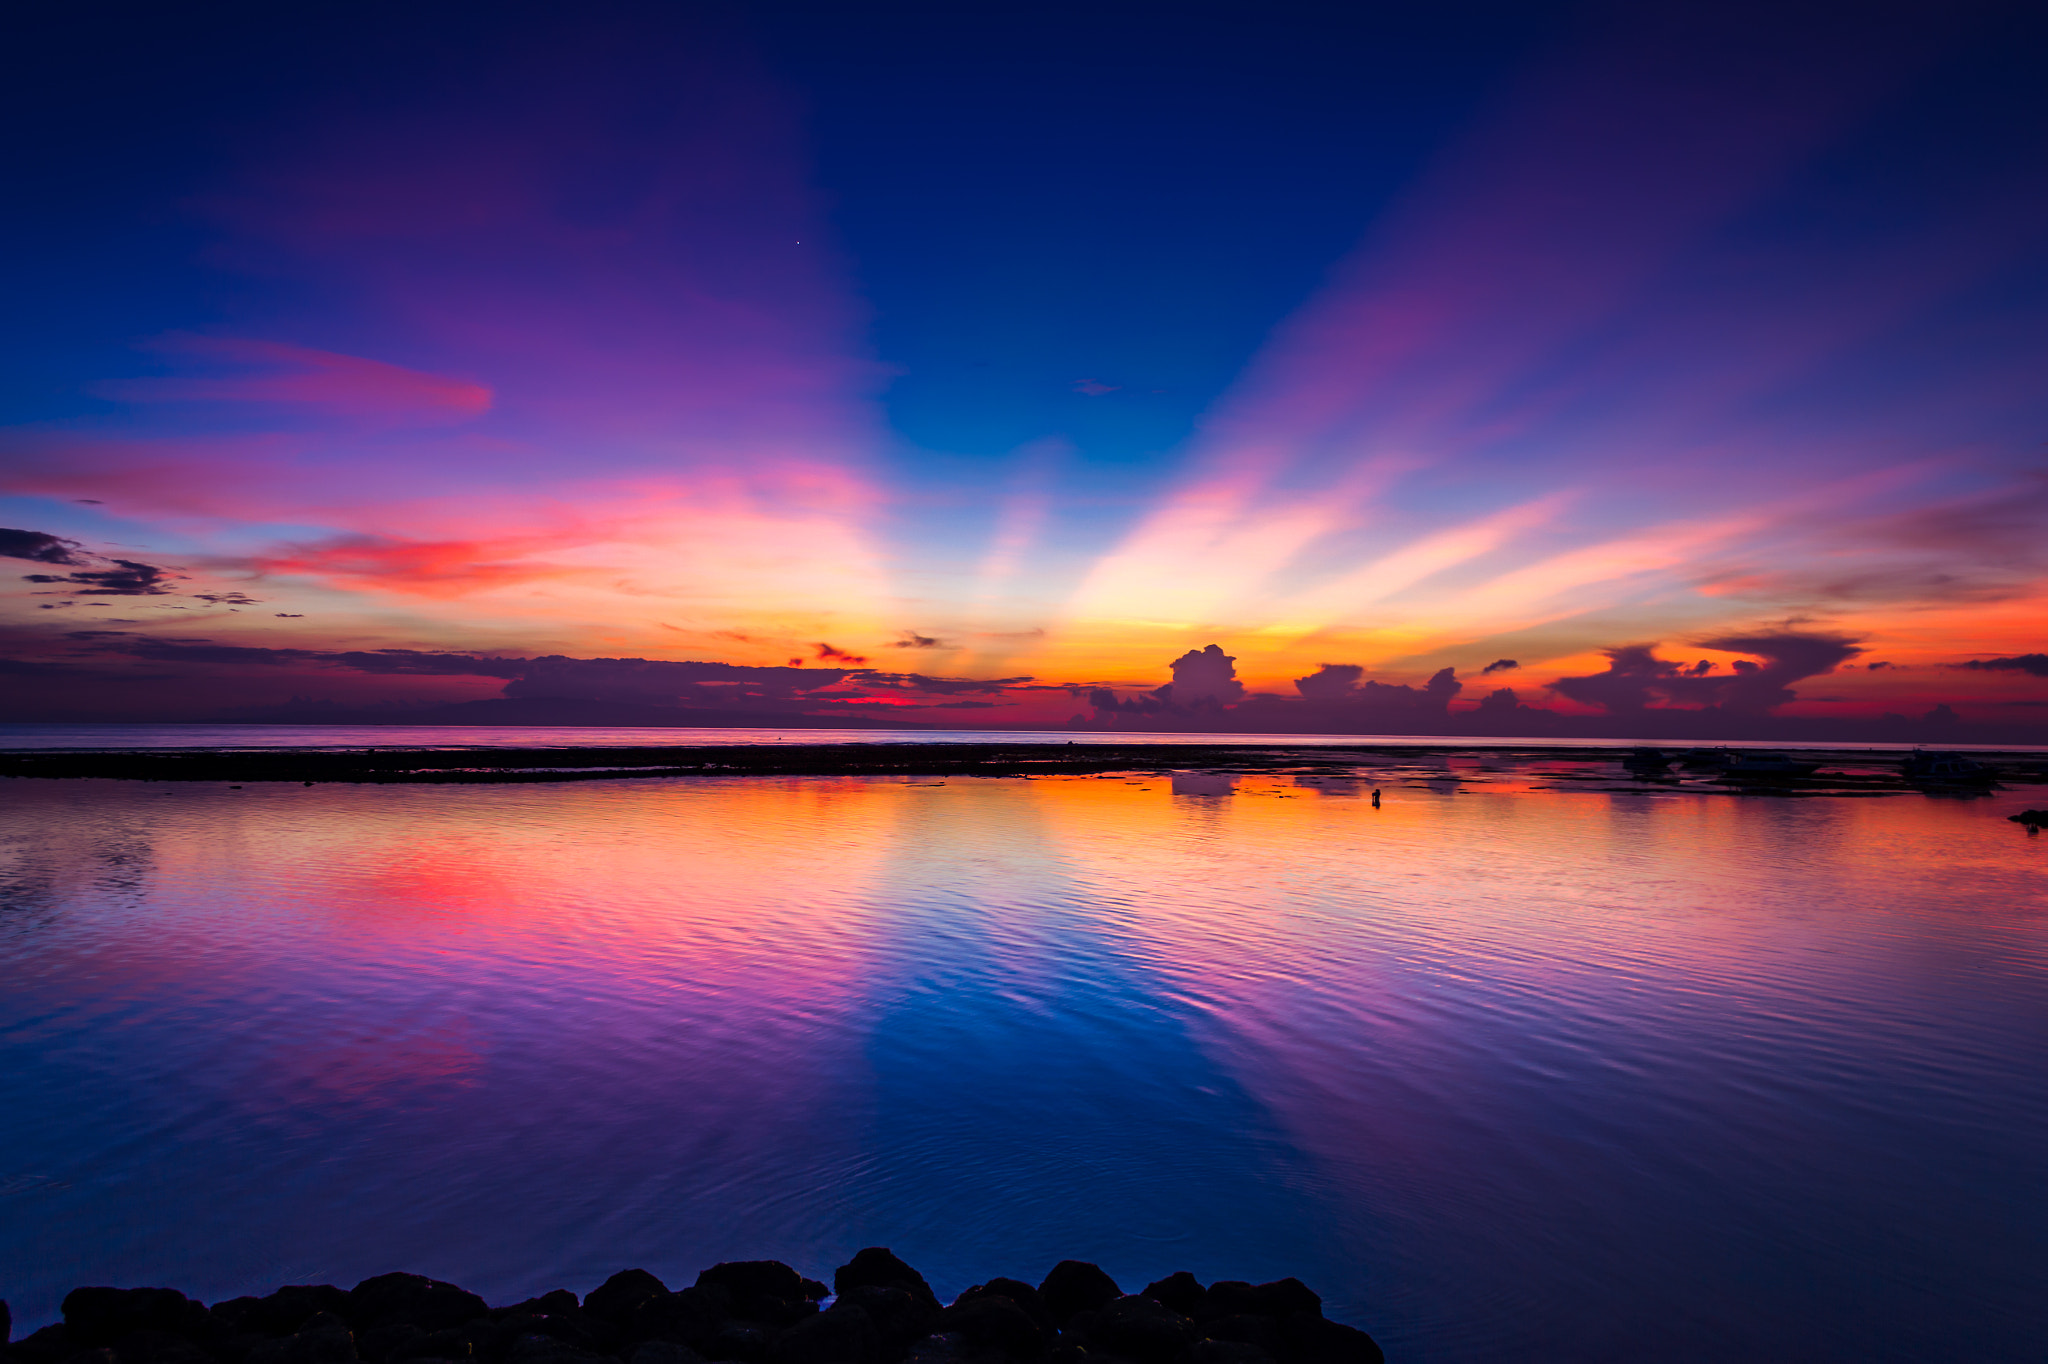 Photograph Colorful Hues by Kshitij Aggarwal on 500px